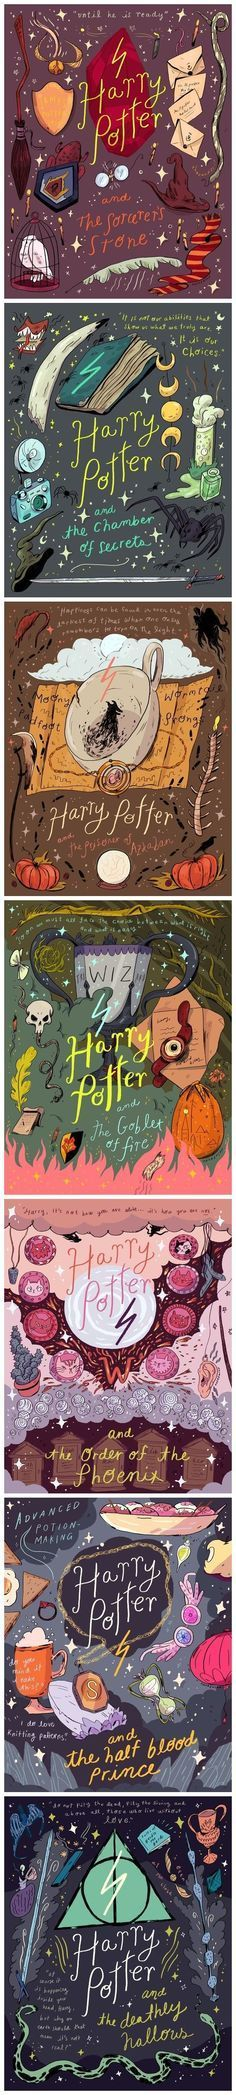 Harry Potter print Illustration by Natalie Andrews